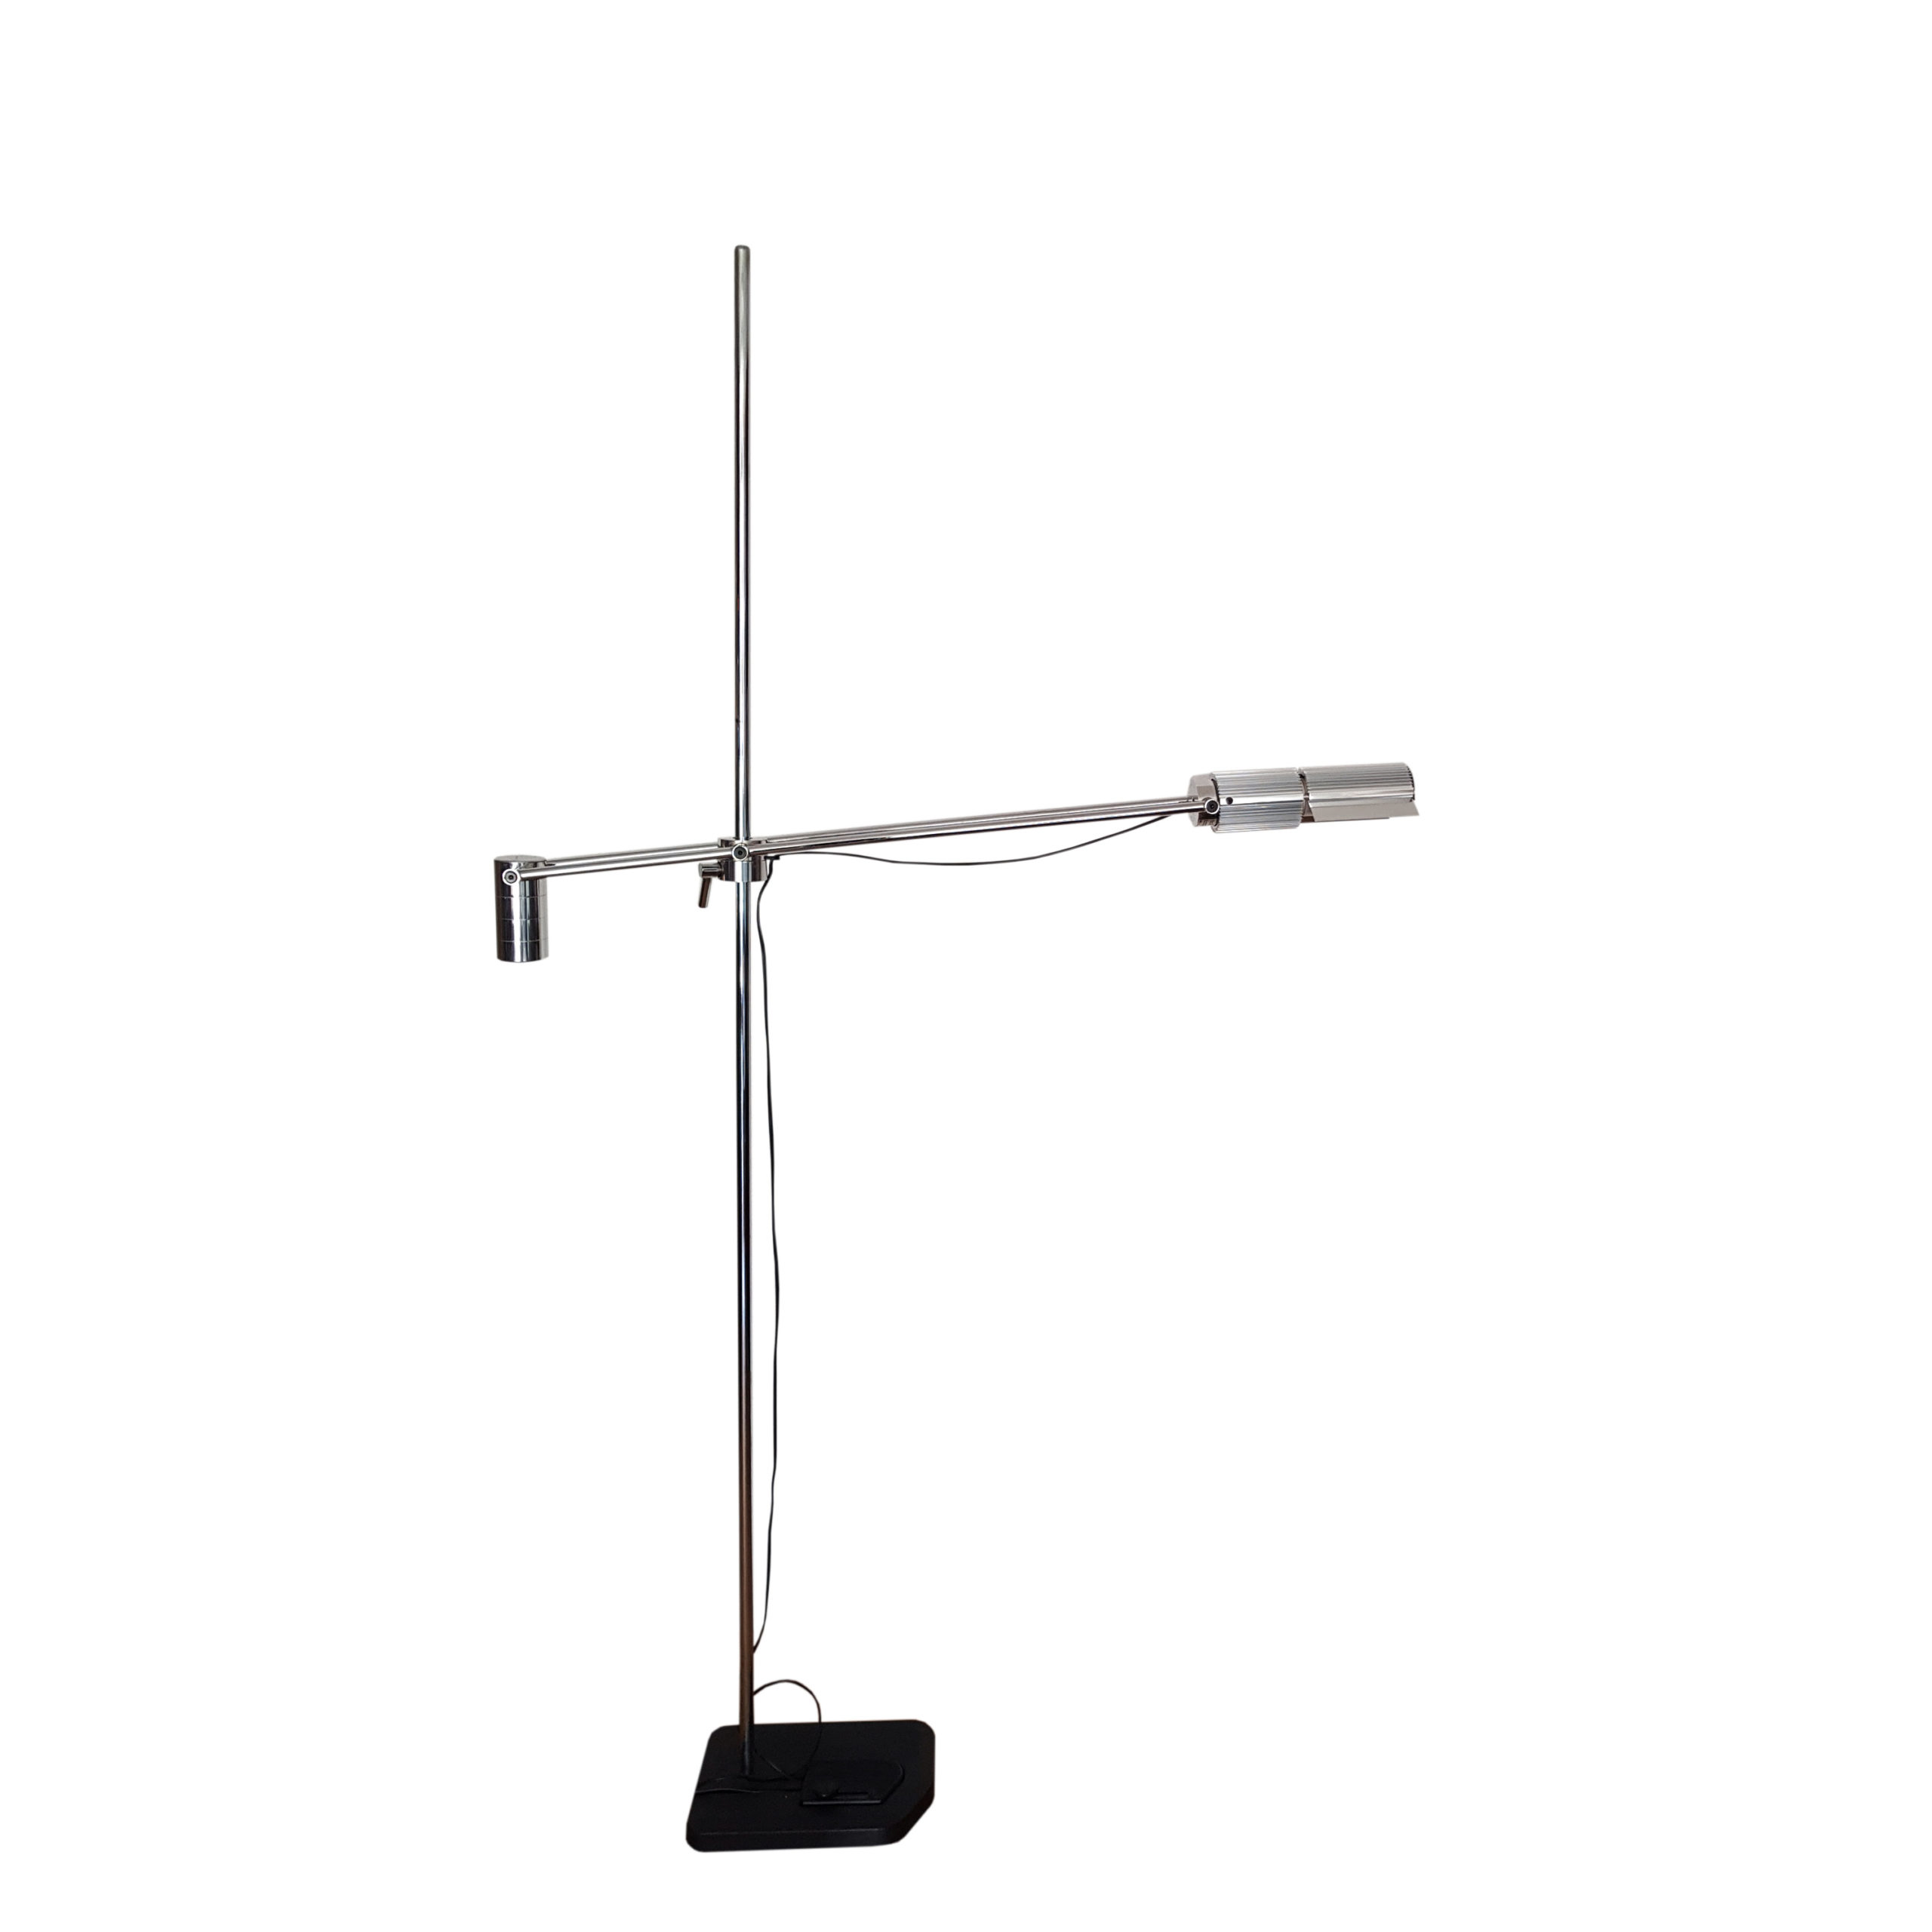 swisslamps international model 808 floor lamp